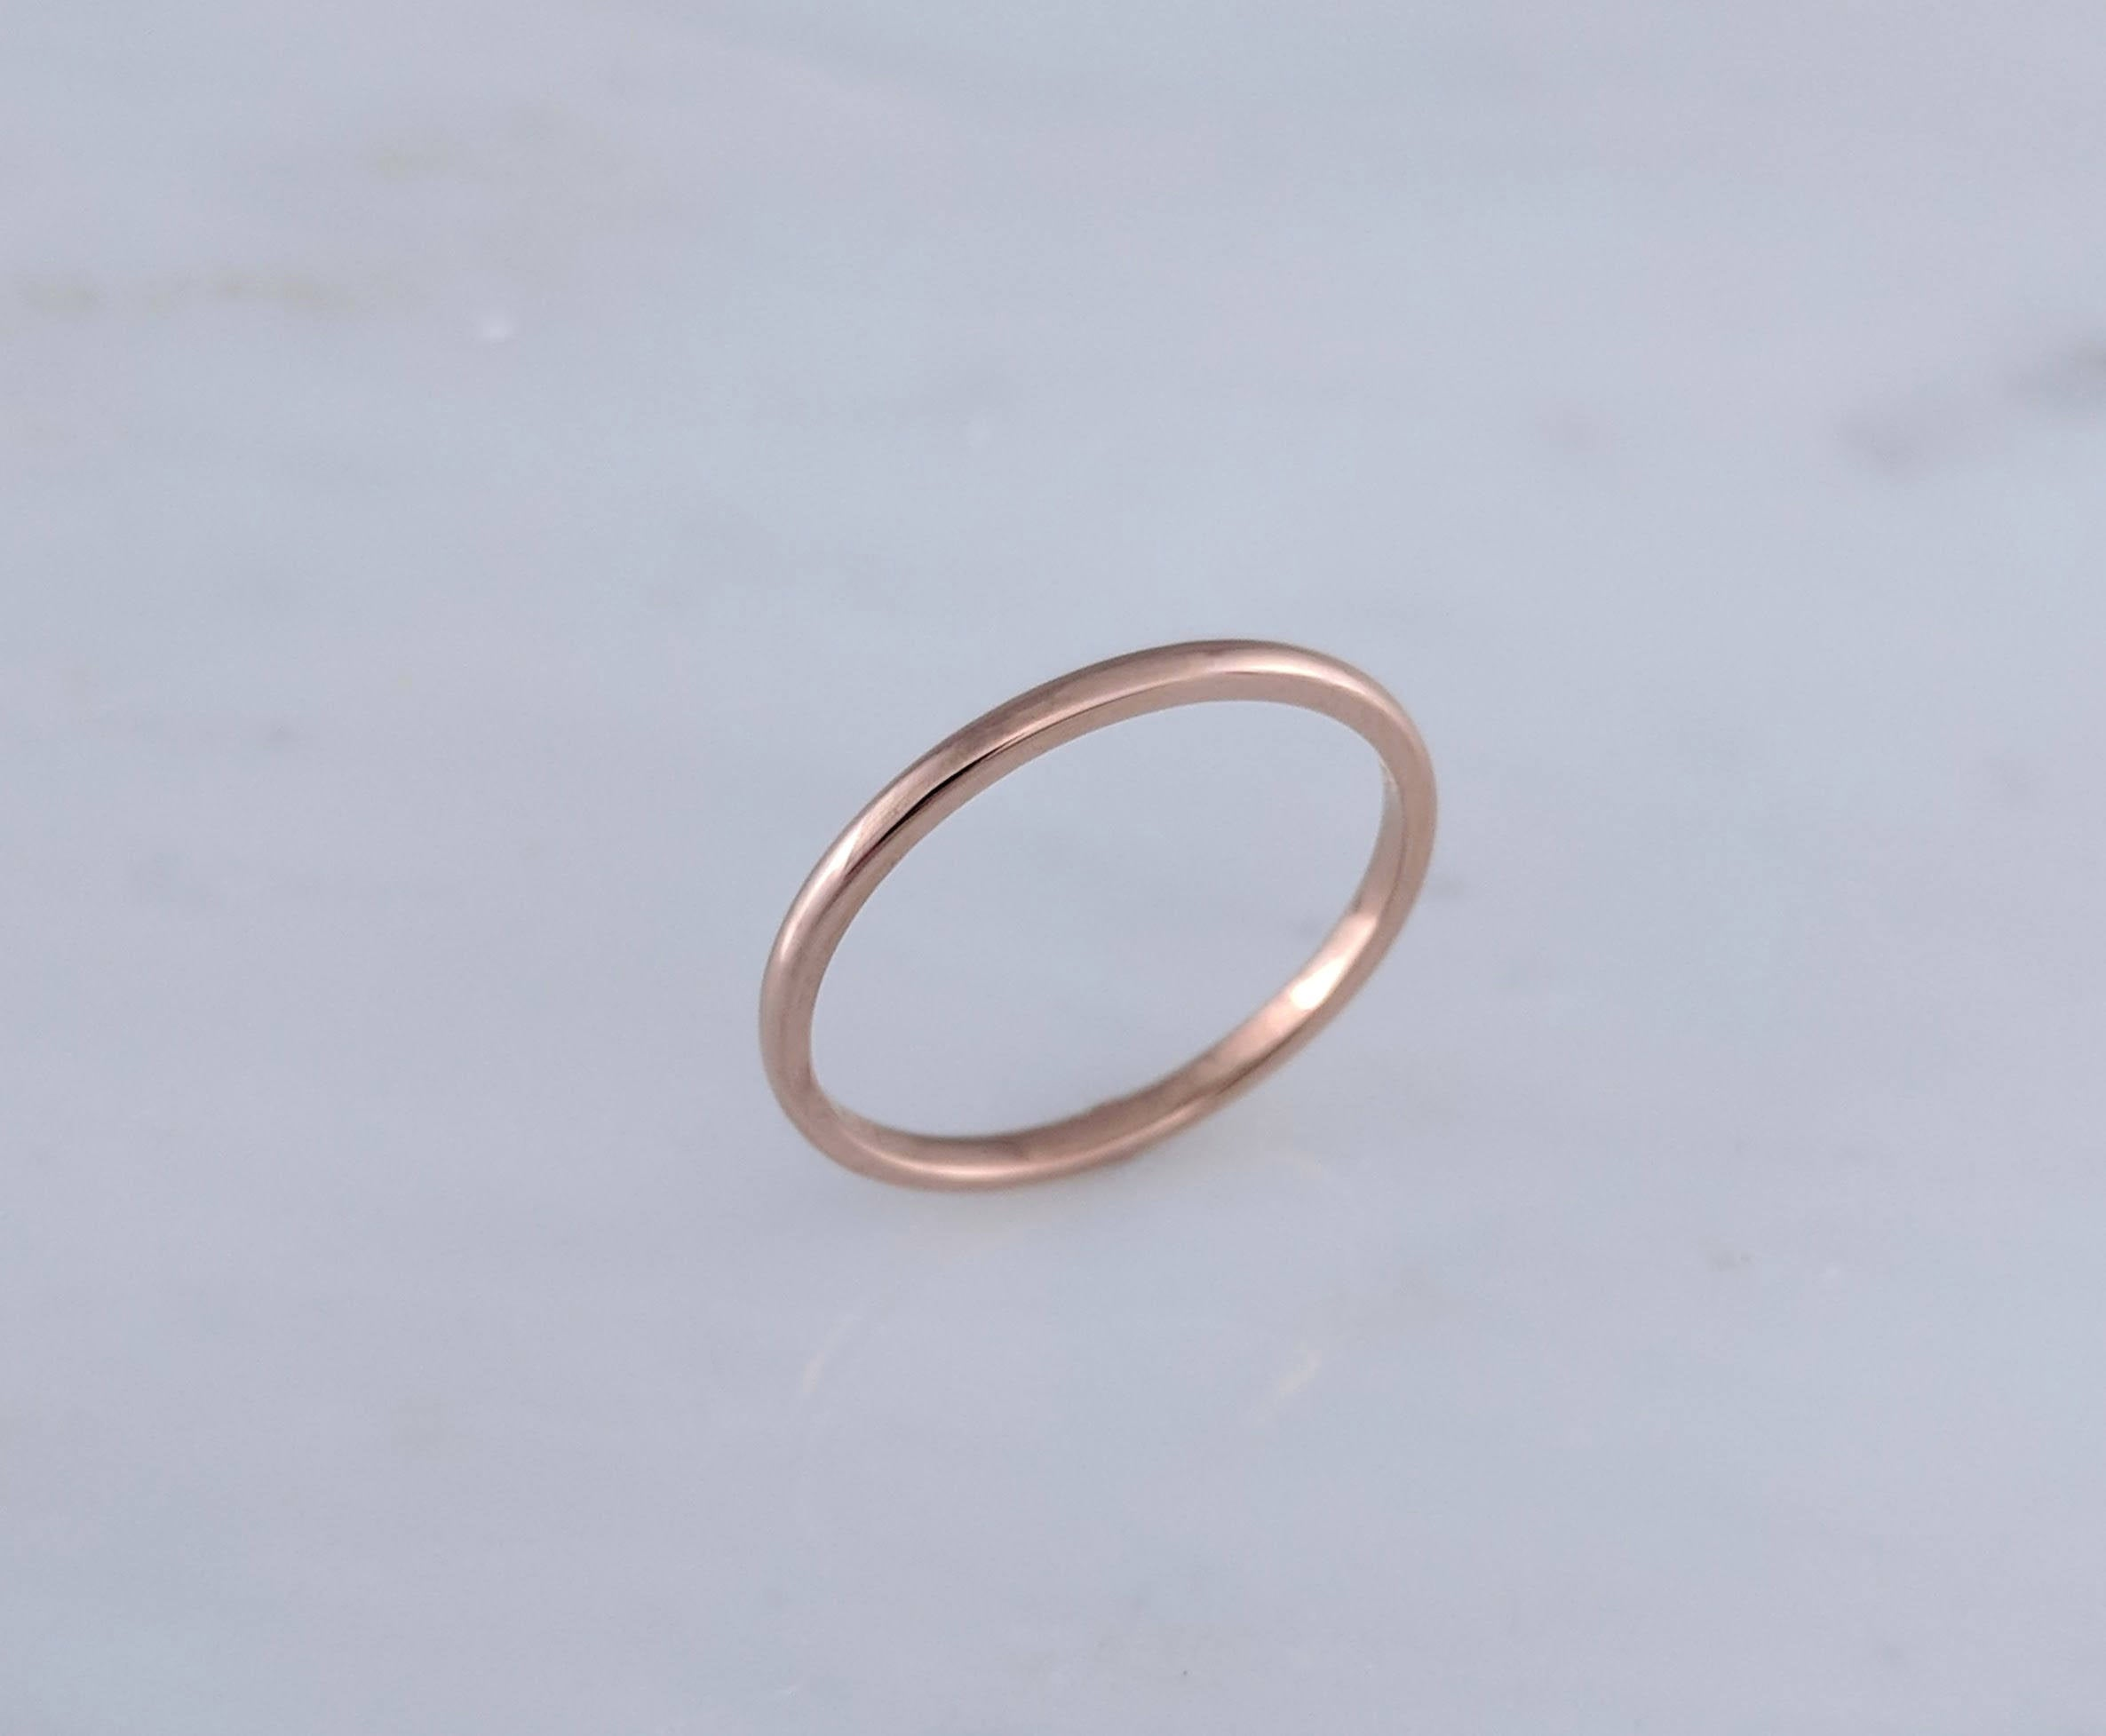 1.5mm 14K Rose Gold Half Round Band